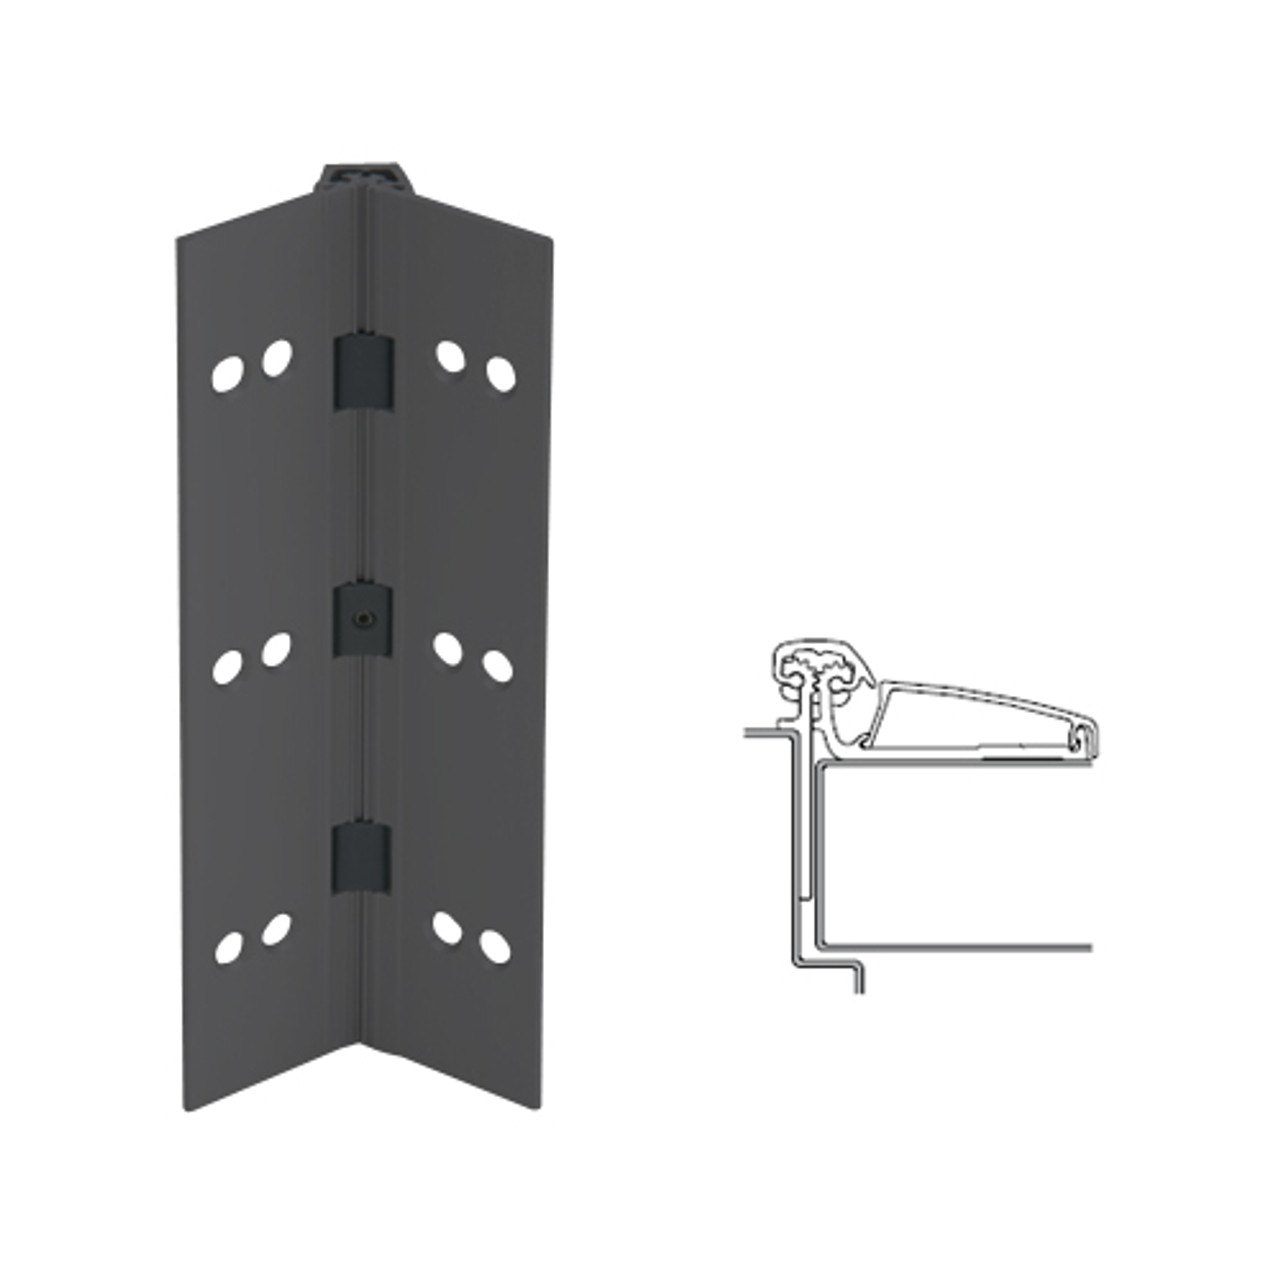 045XY-315AN-120-SECHM IVES Adjustable Half Surface Continuous Geared Hinges with Security Screws - Hex Pin Drive in Anodized Black